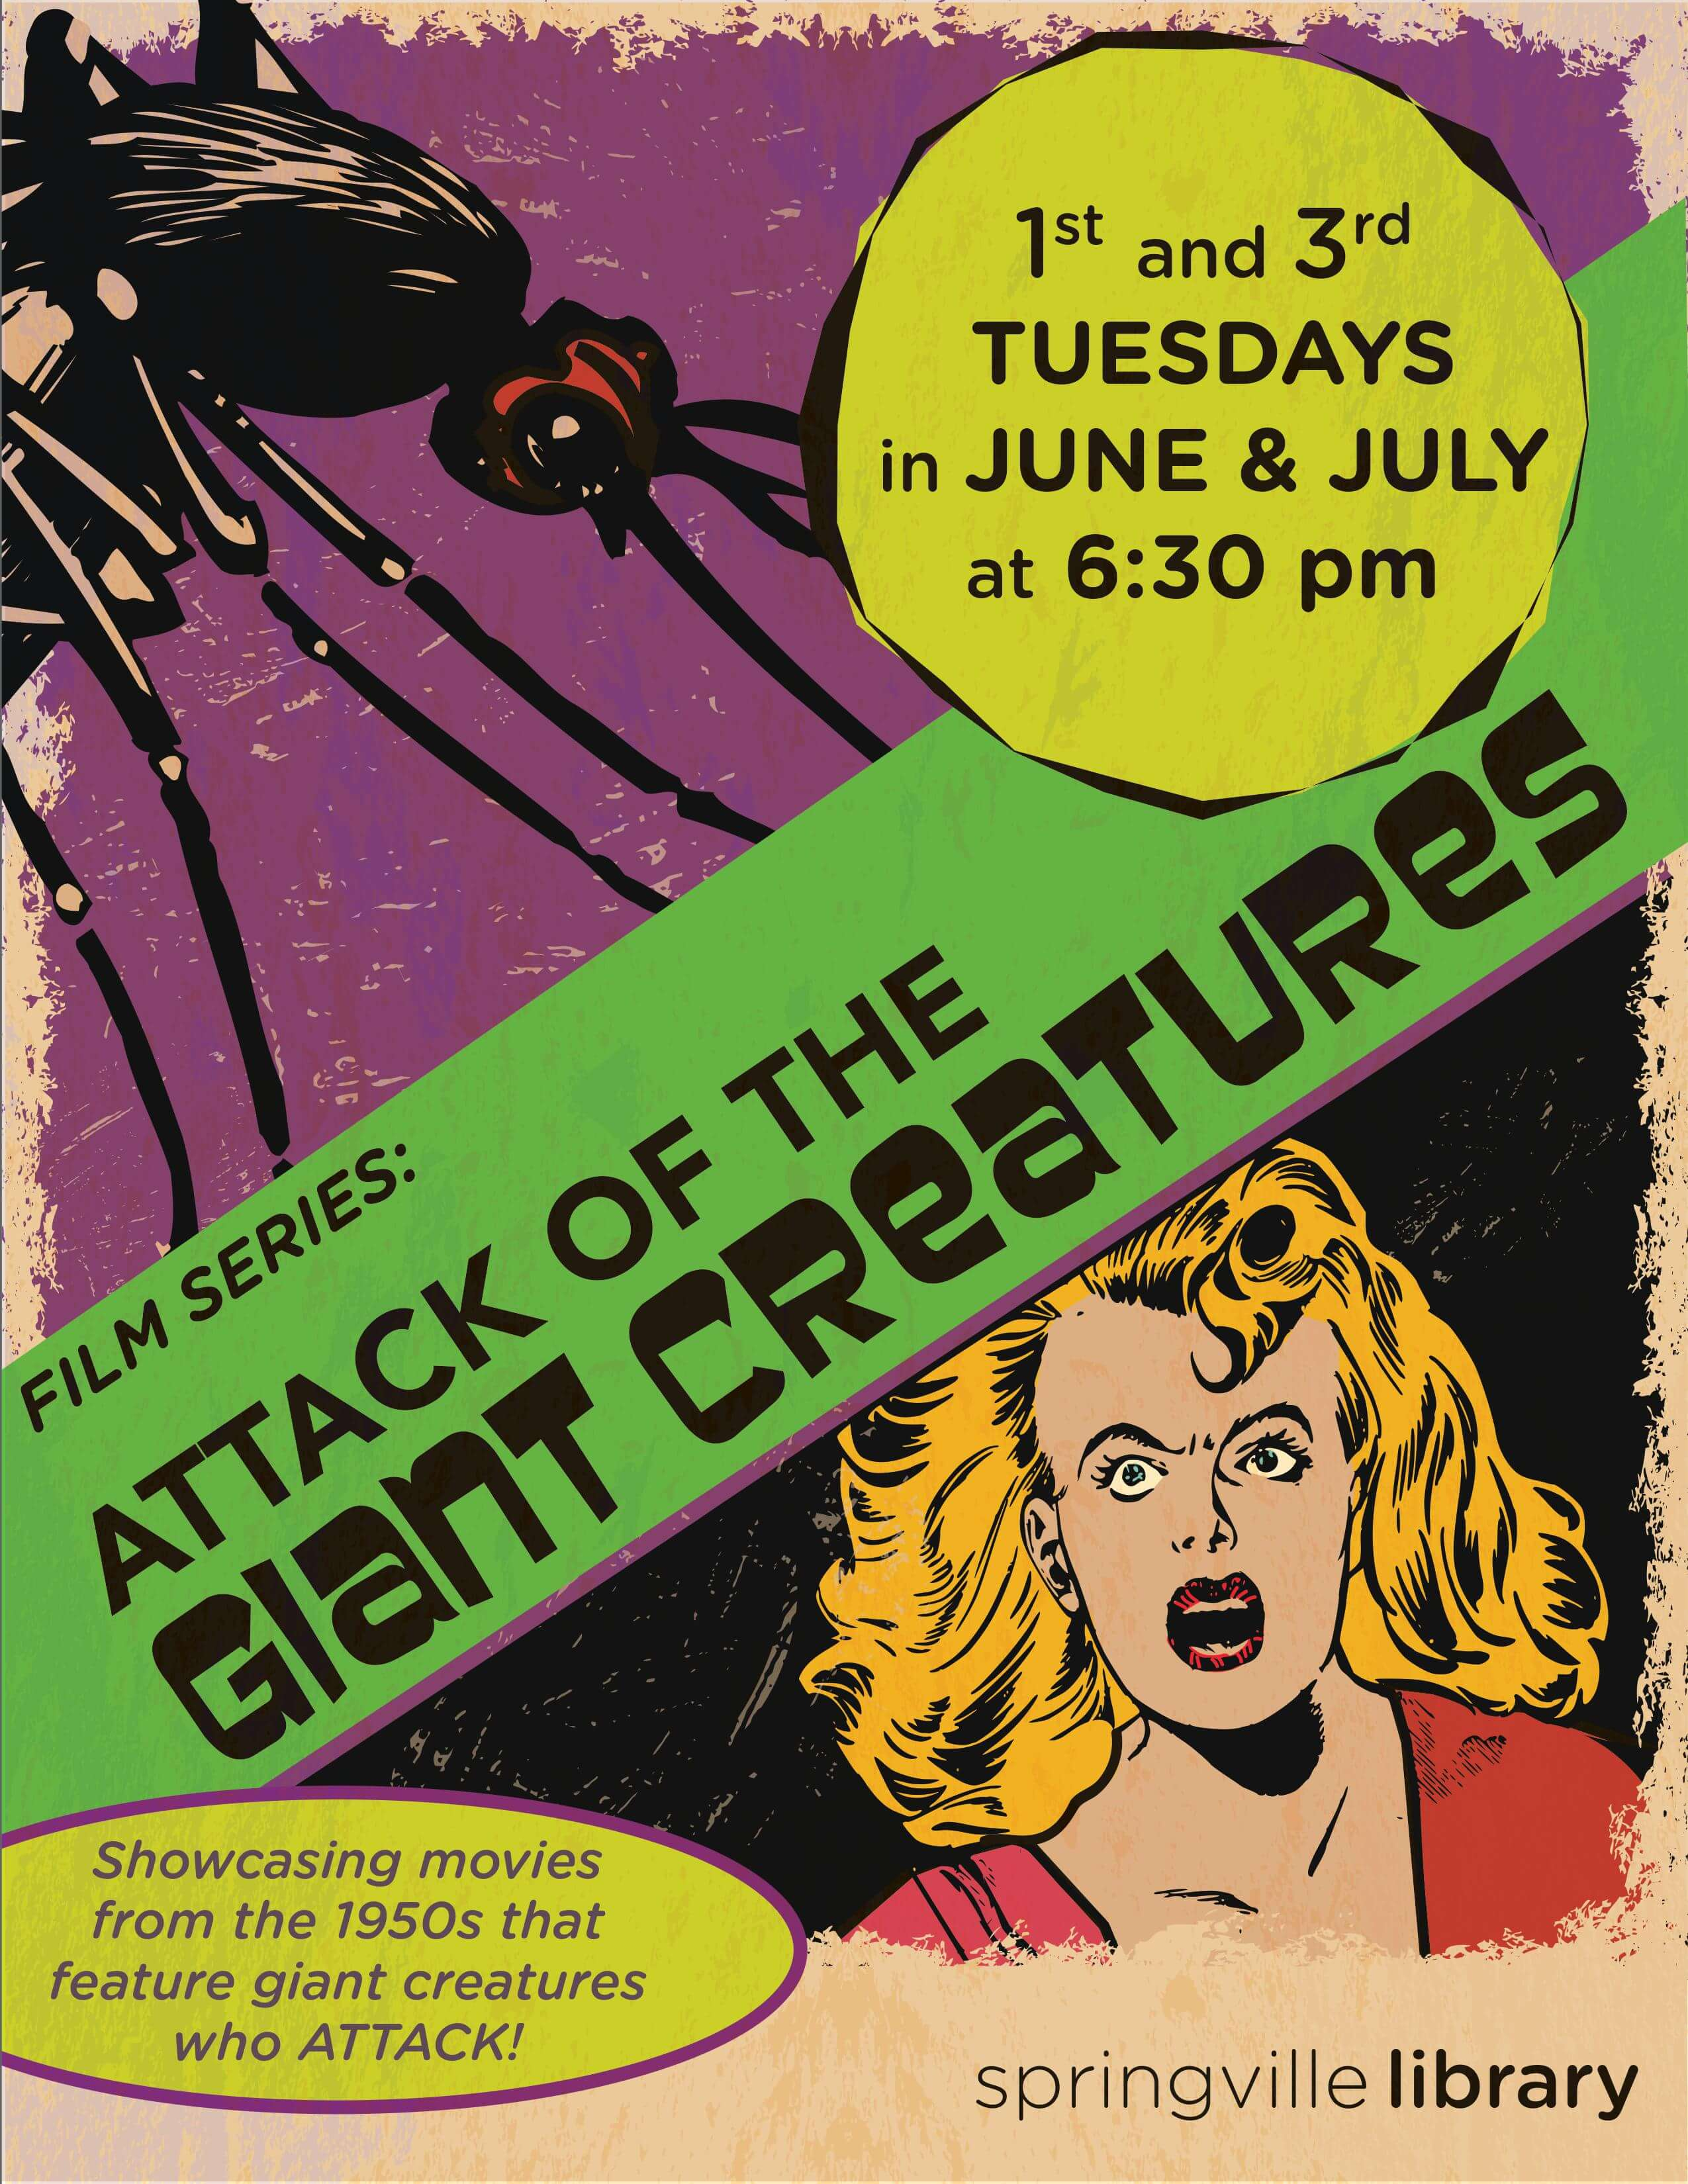 Attack of the Giant Creatures Film Series @ Springville Public Library | Springville | Utah | United States